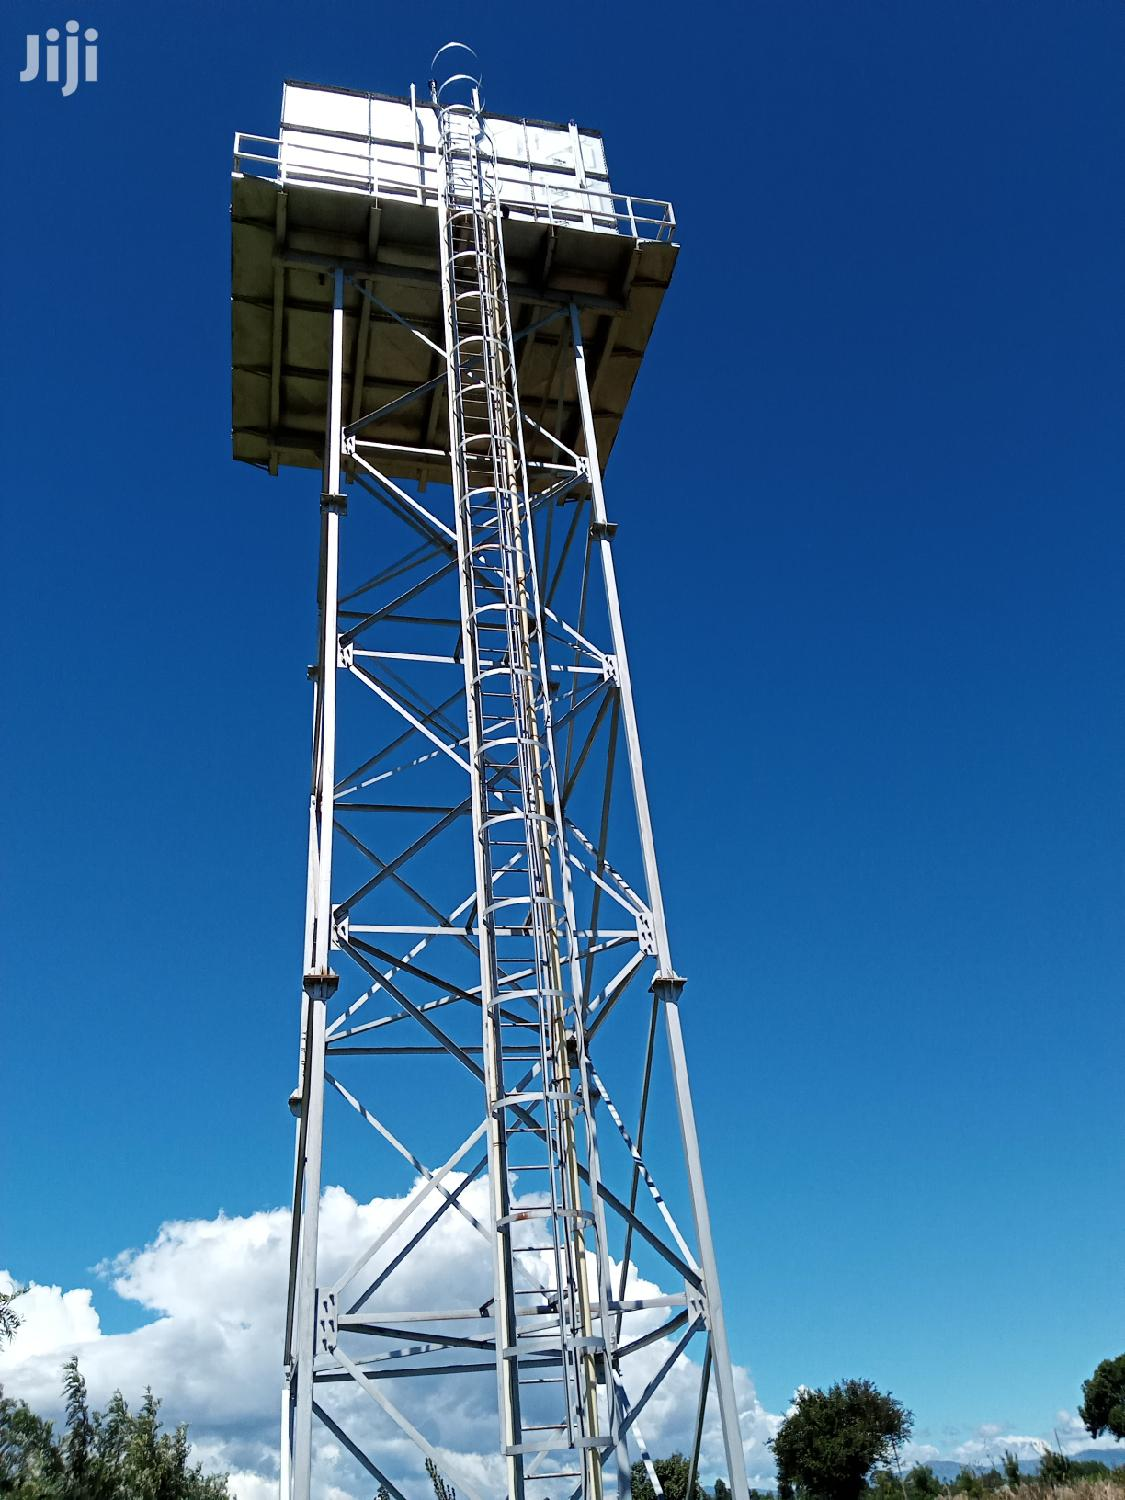 Tank Towers | Other Repair & Construction Items for sale in Langas, Kapseret, Kenya